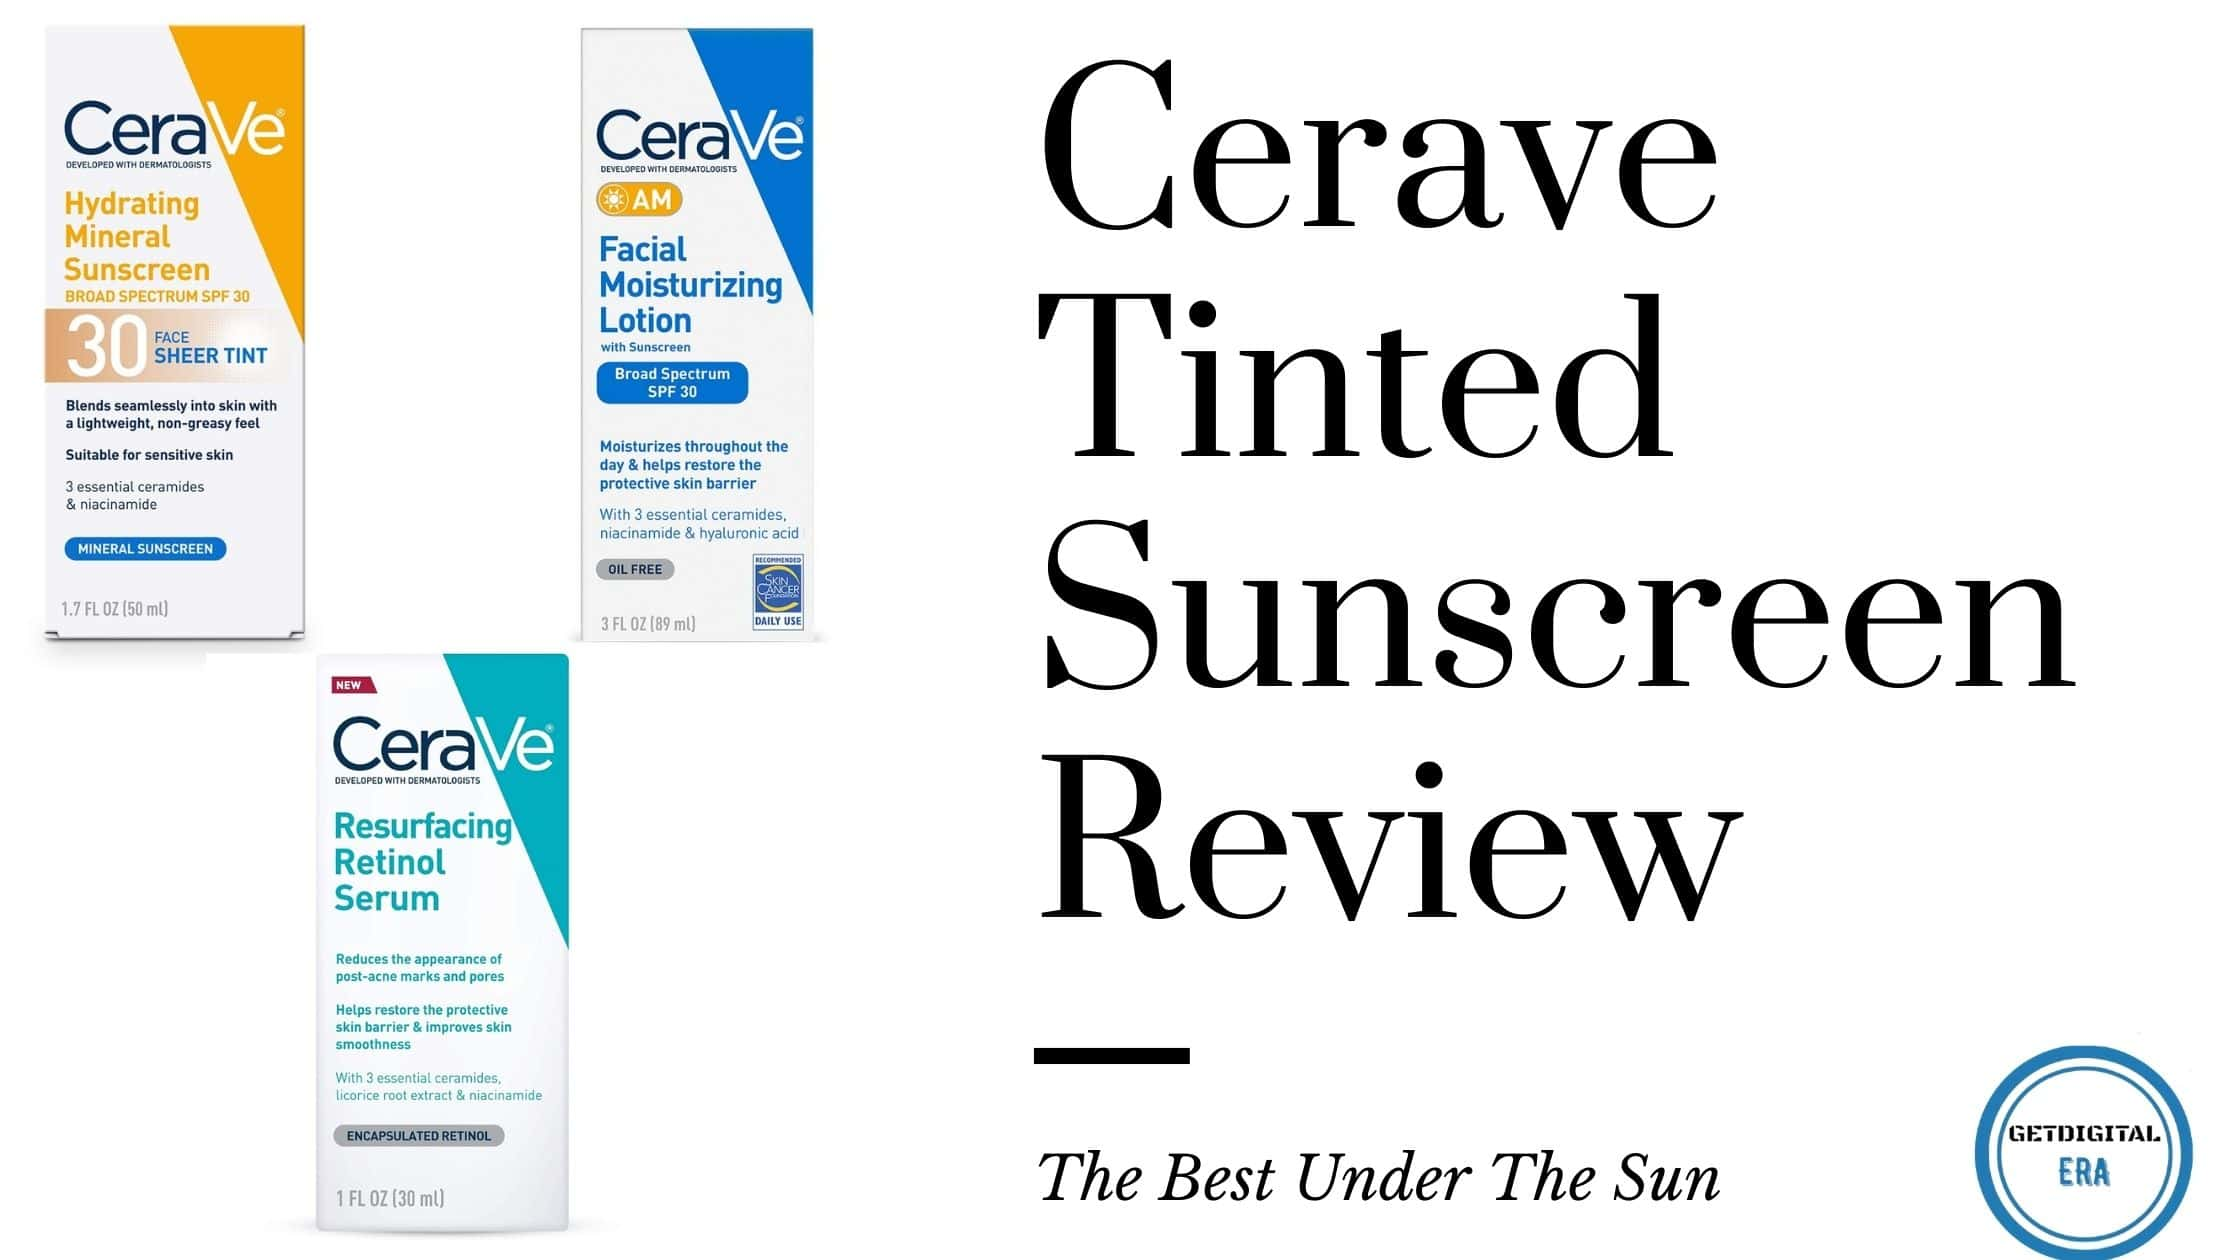 Cerave Tinted Sunscreen Review